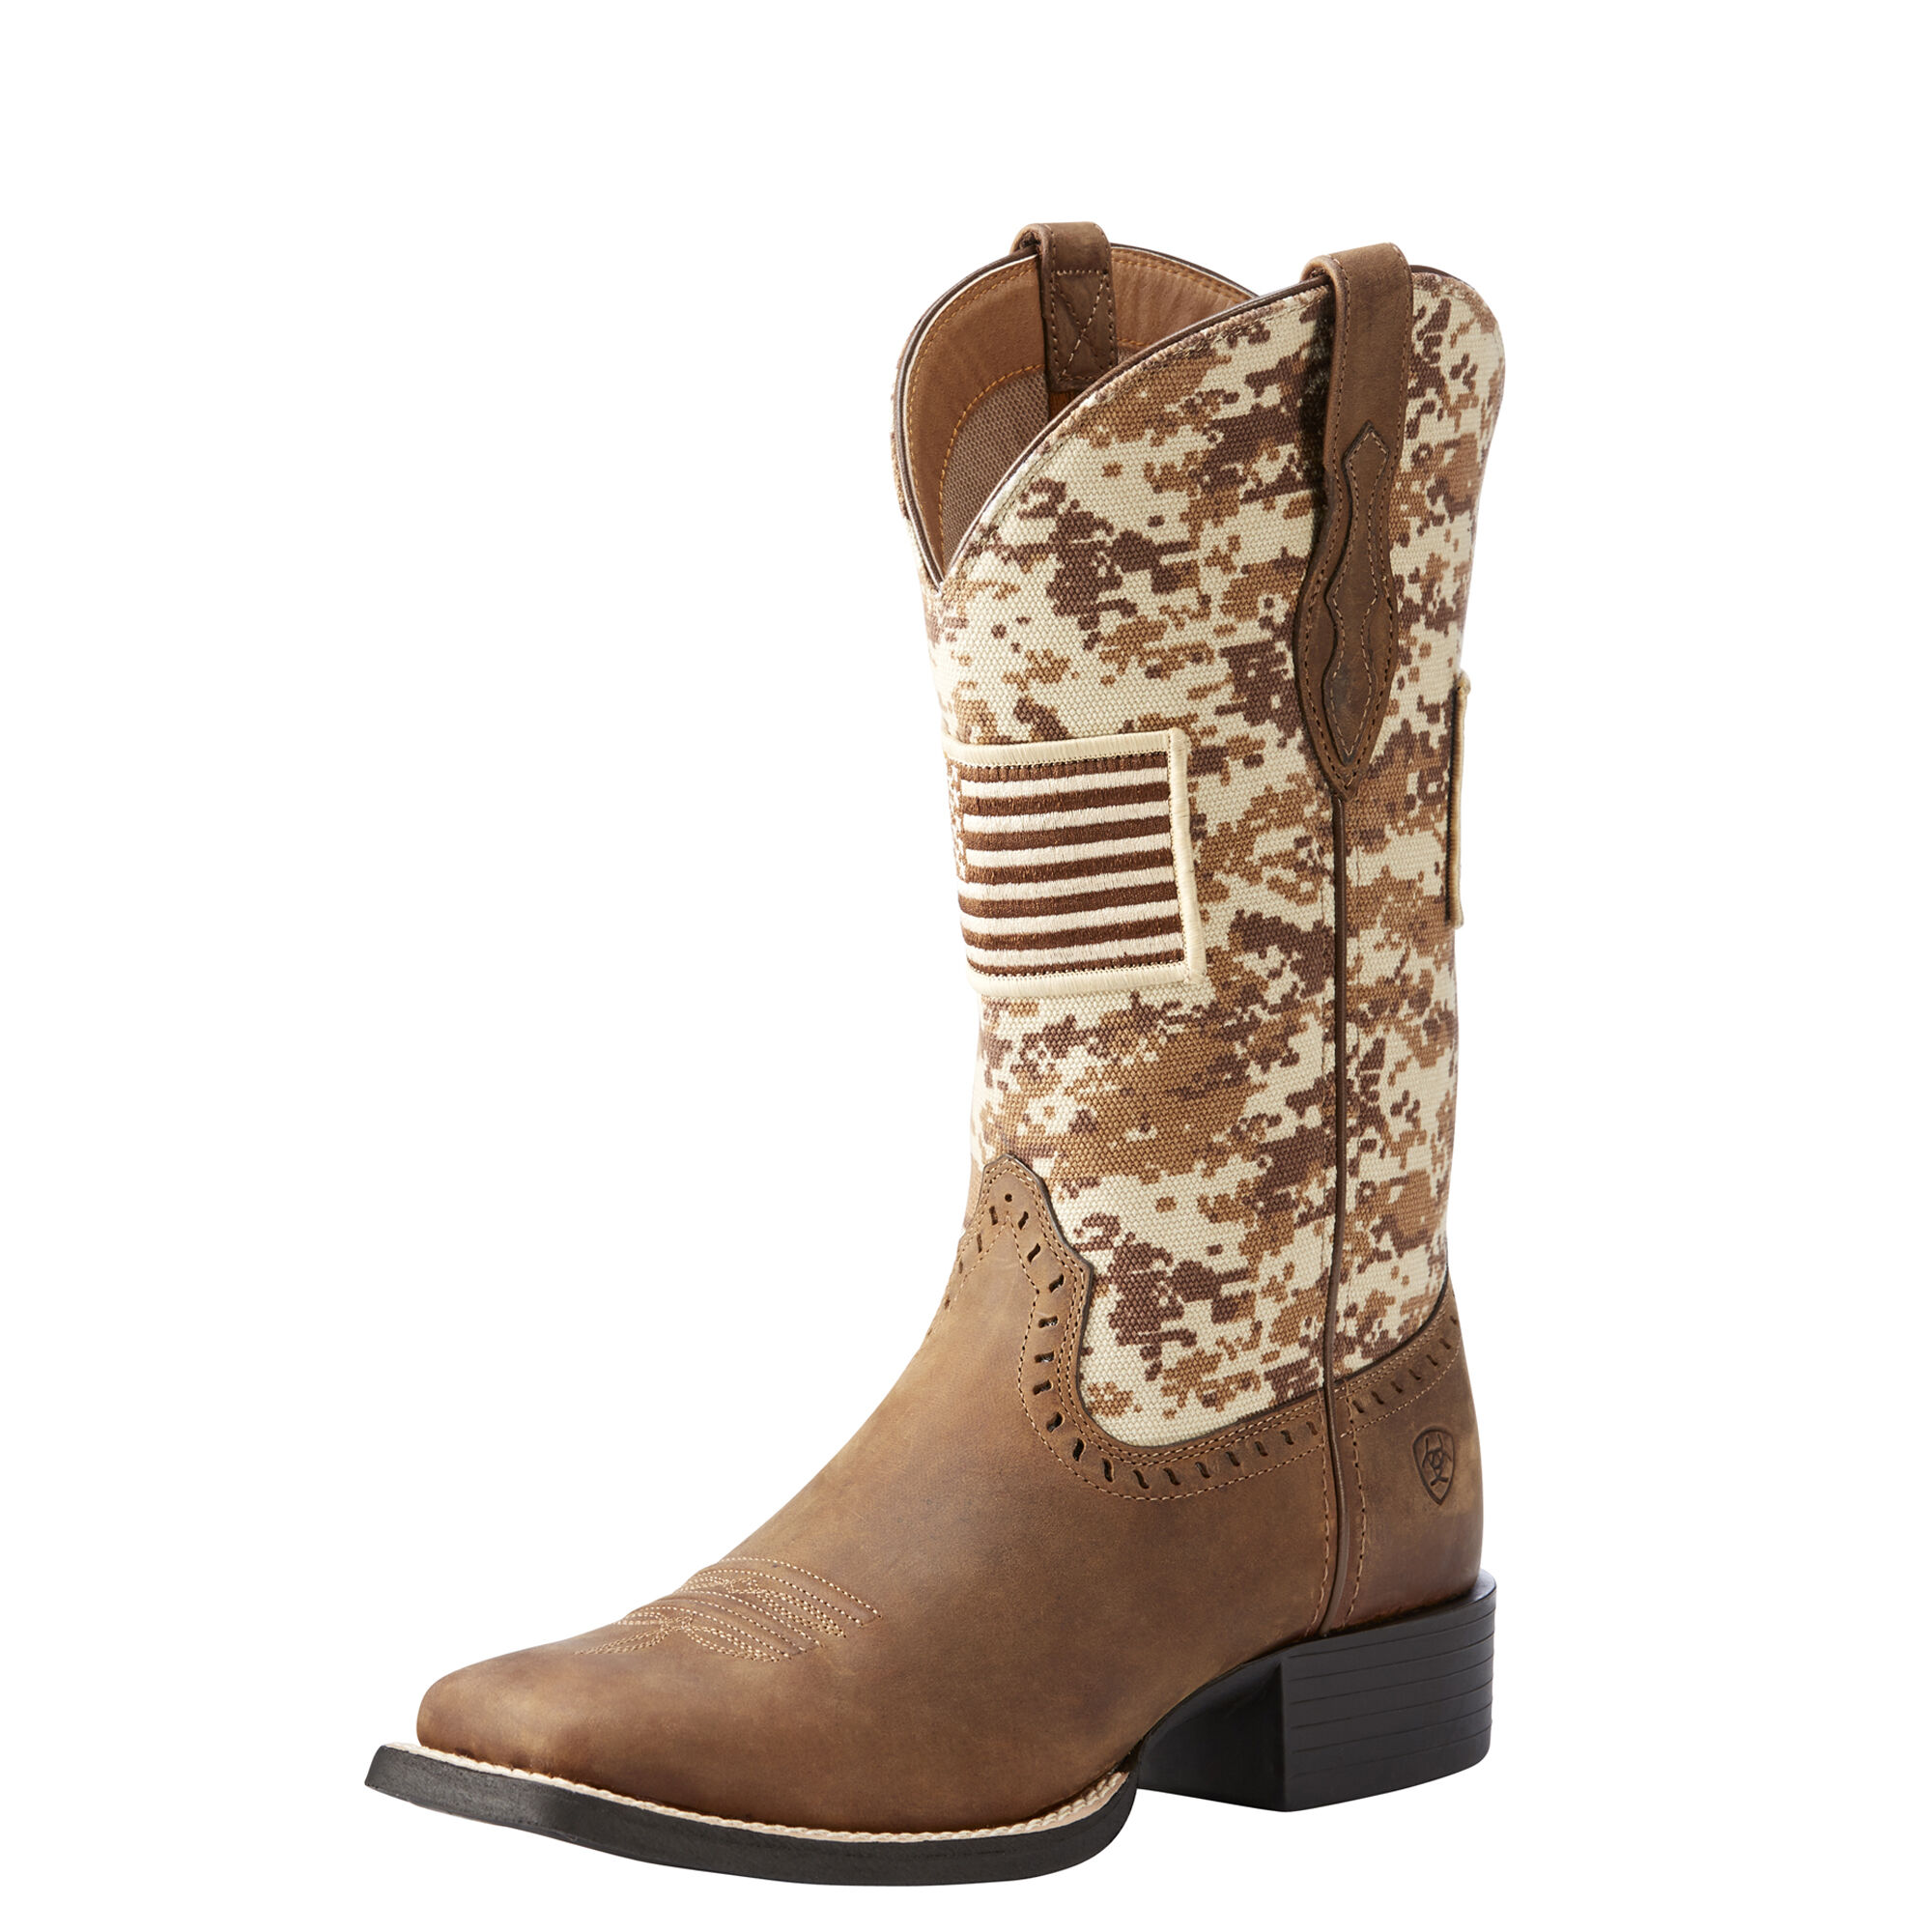 Women's Round Up Patriot Western Boots in Distressed Brown by Ariat